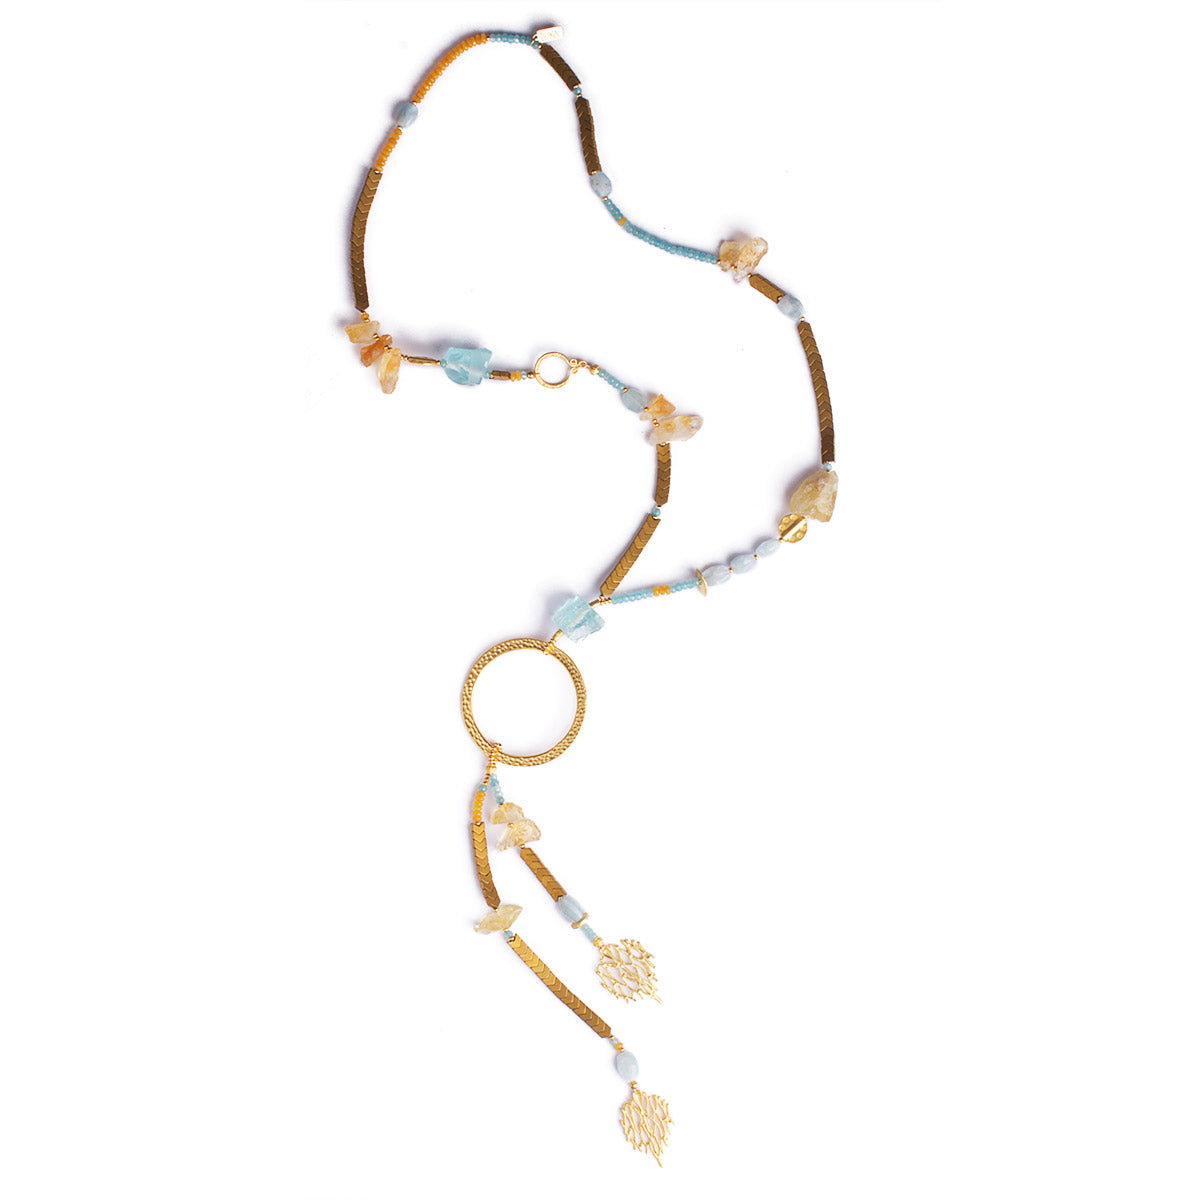 N°450 The Citrine & Aquamarine Meteor Shower Statement Necklace